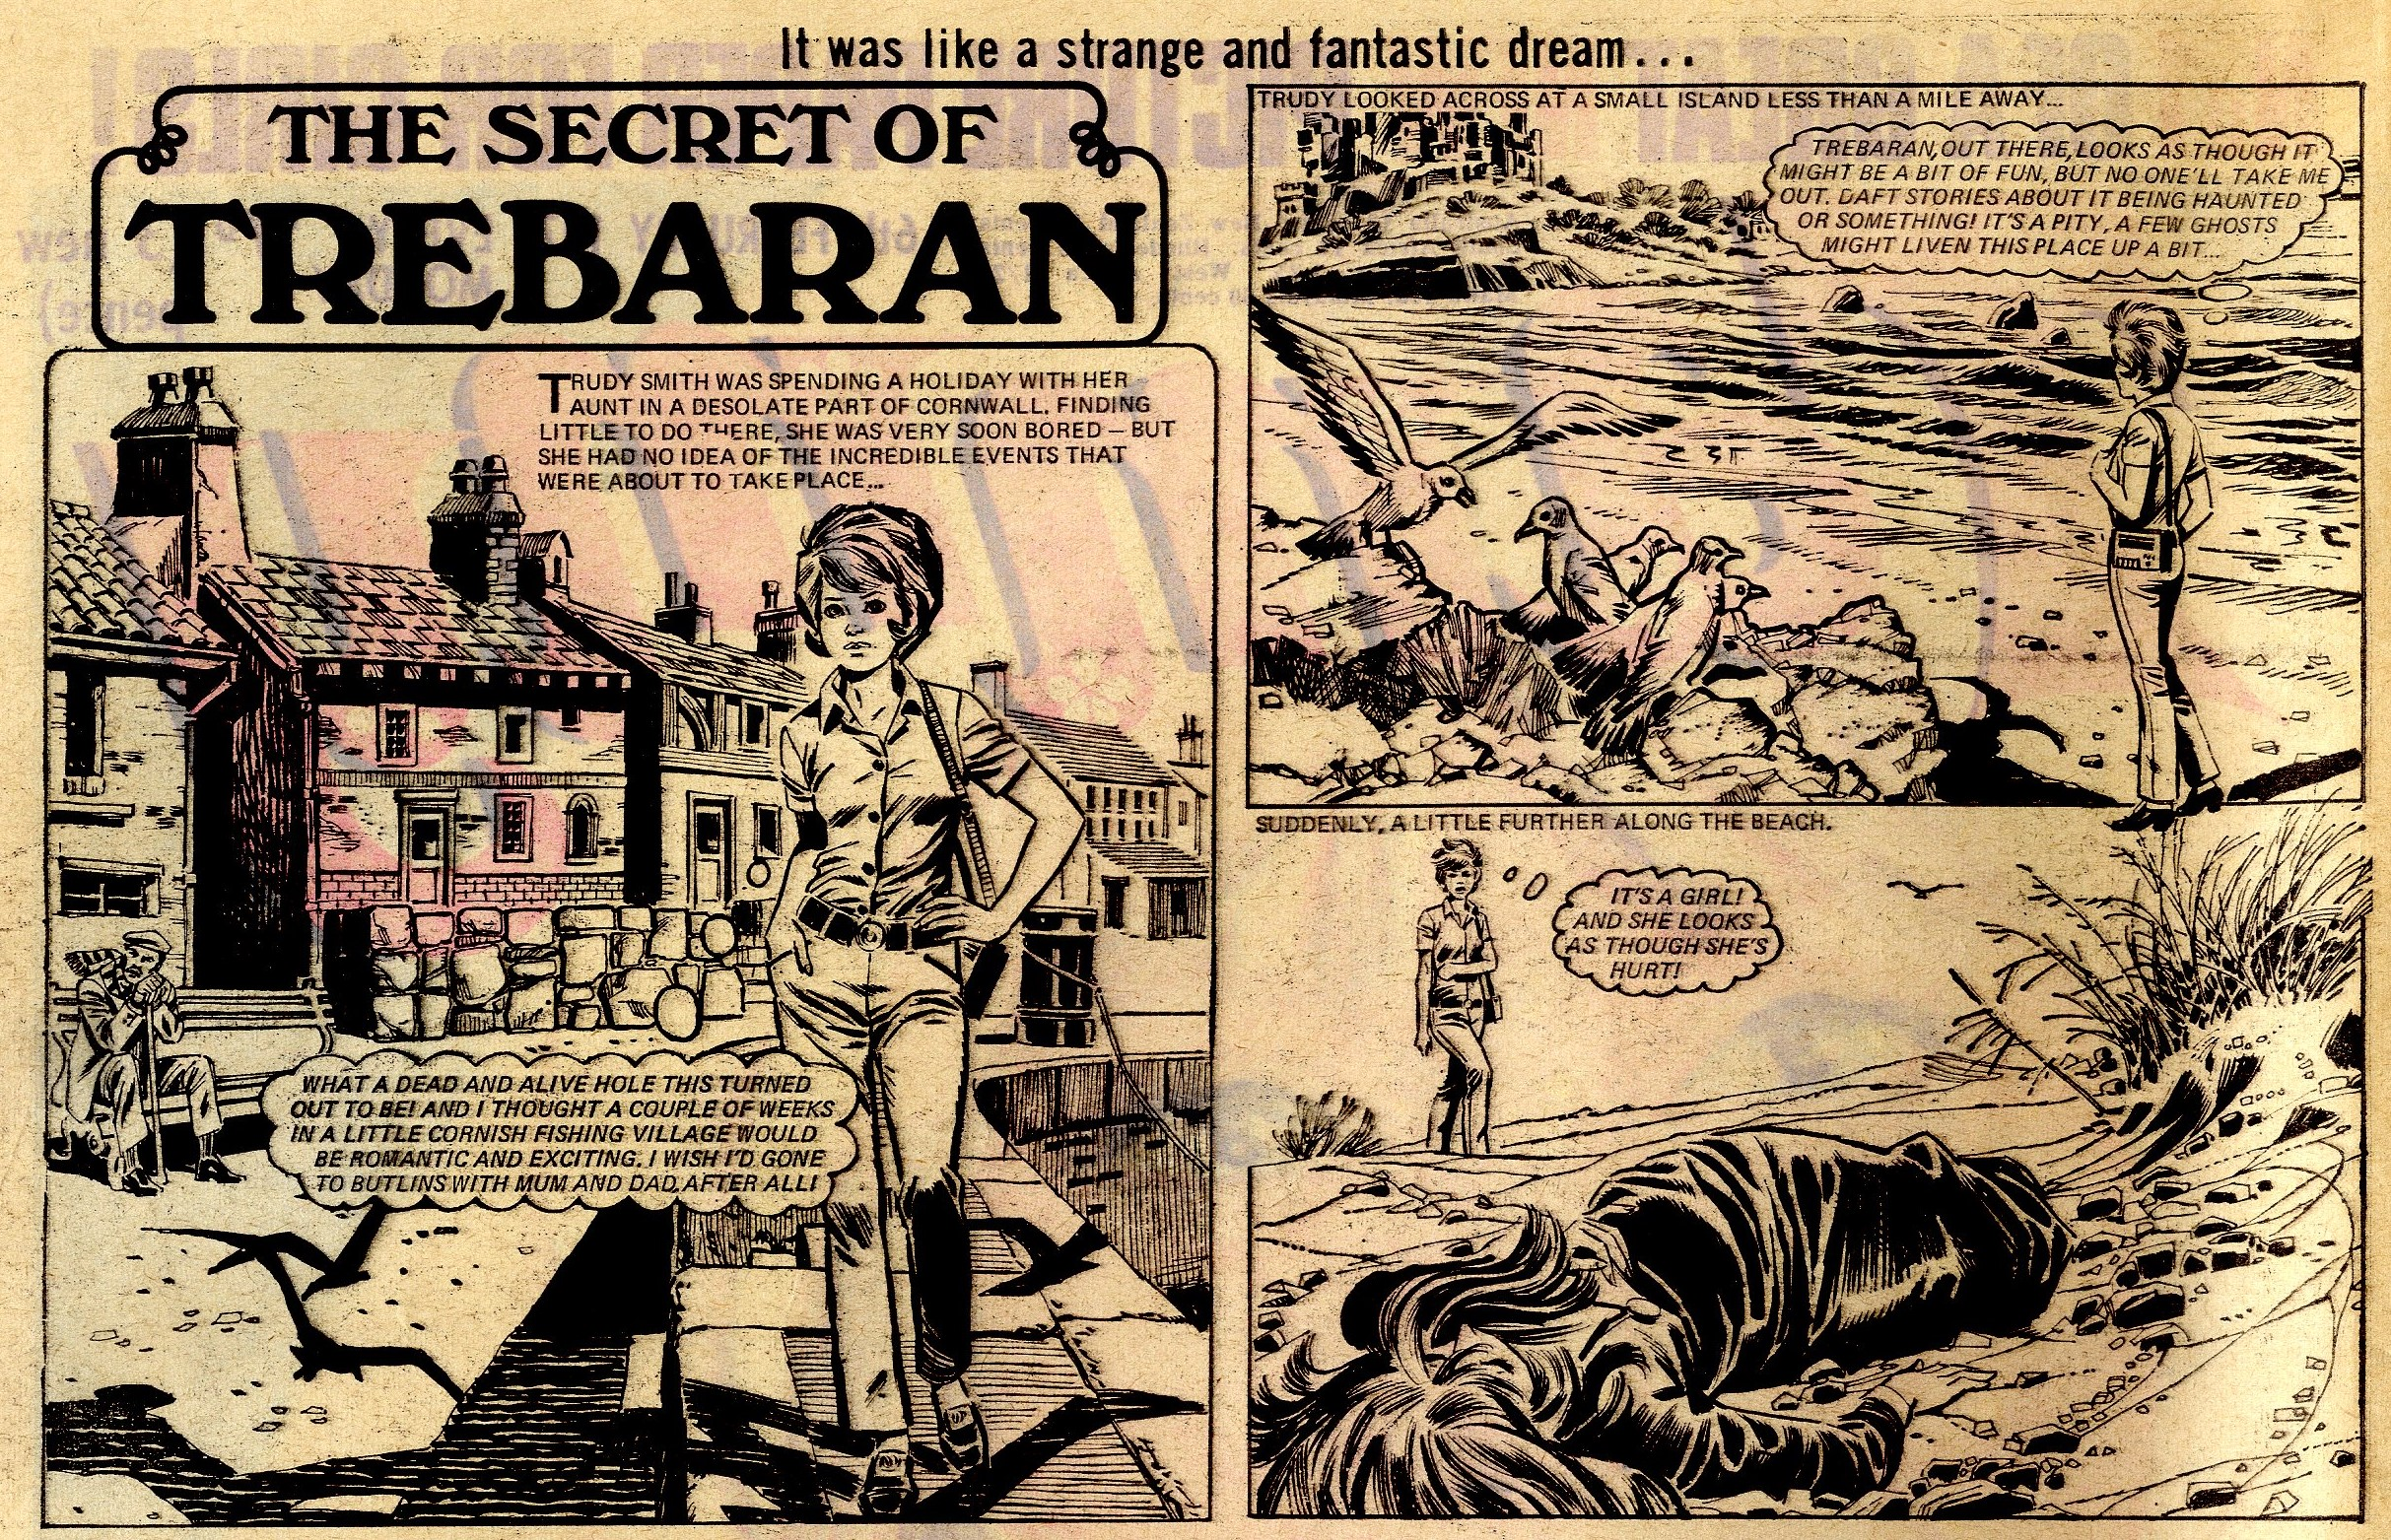 The Secret of Trebaran:   Giorgio Cambiotti  (artist)